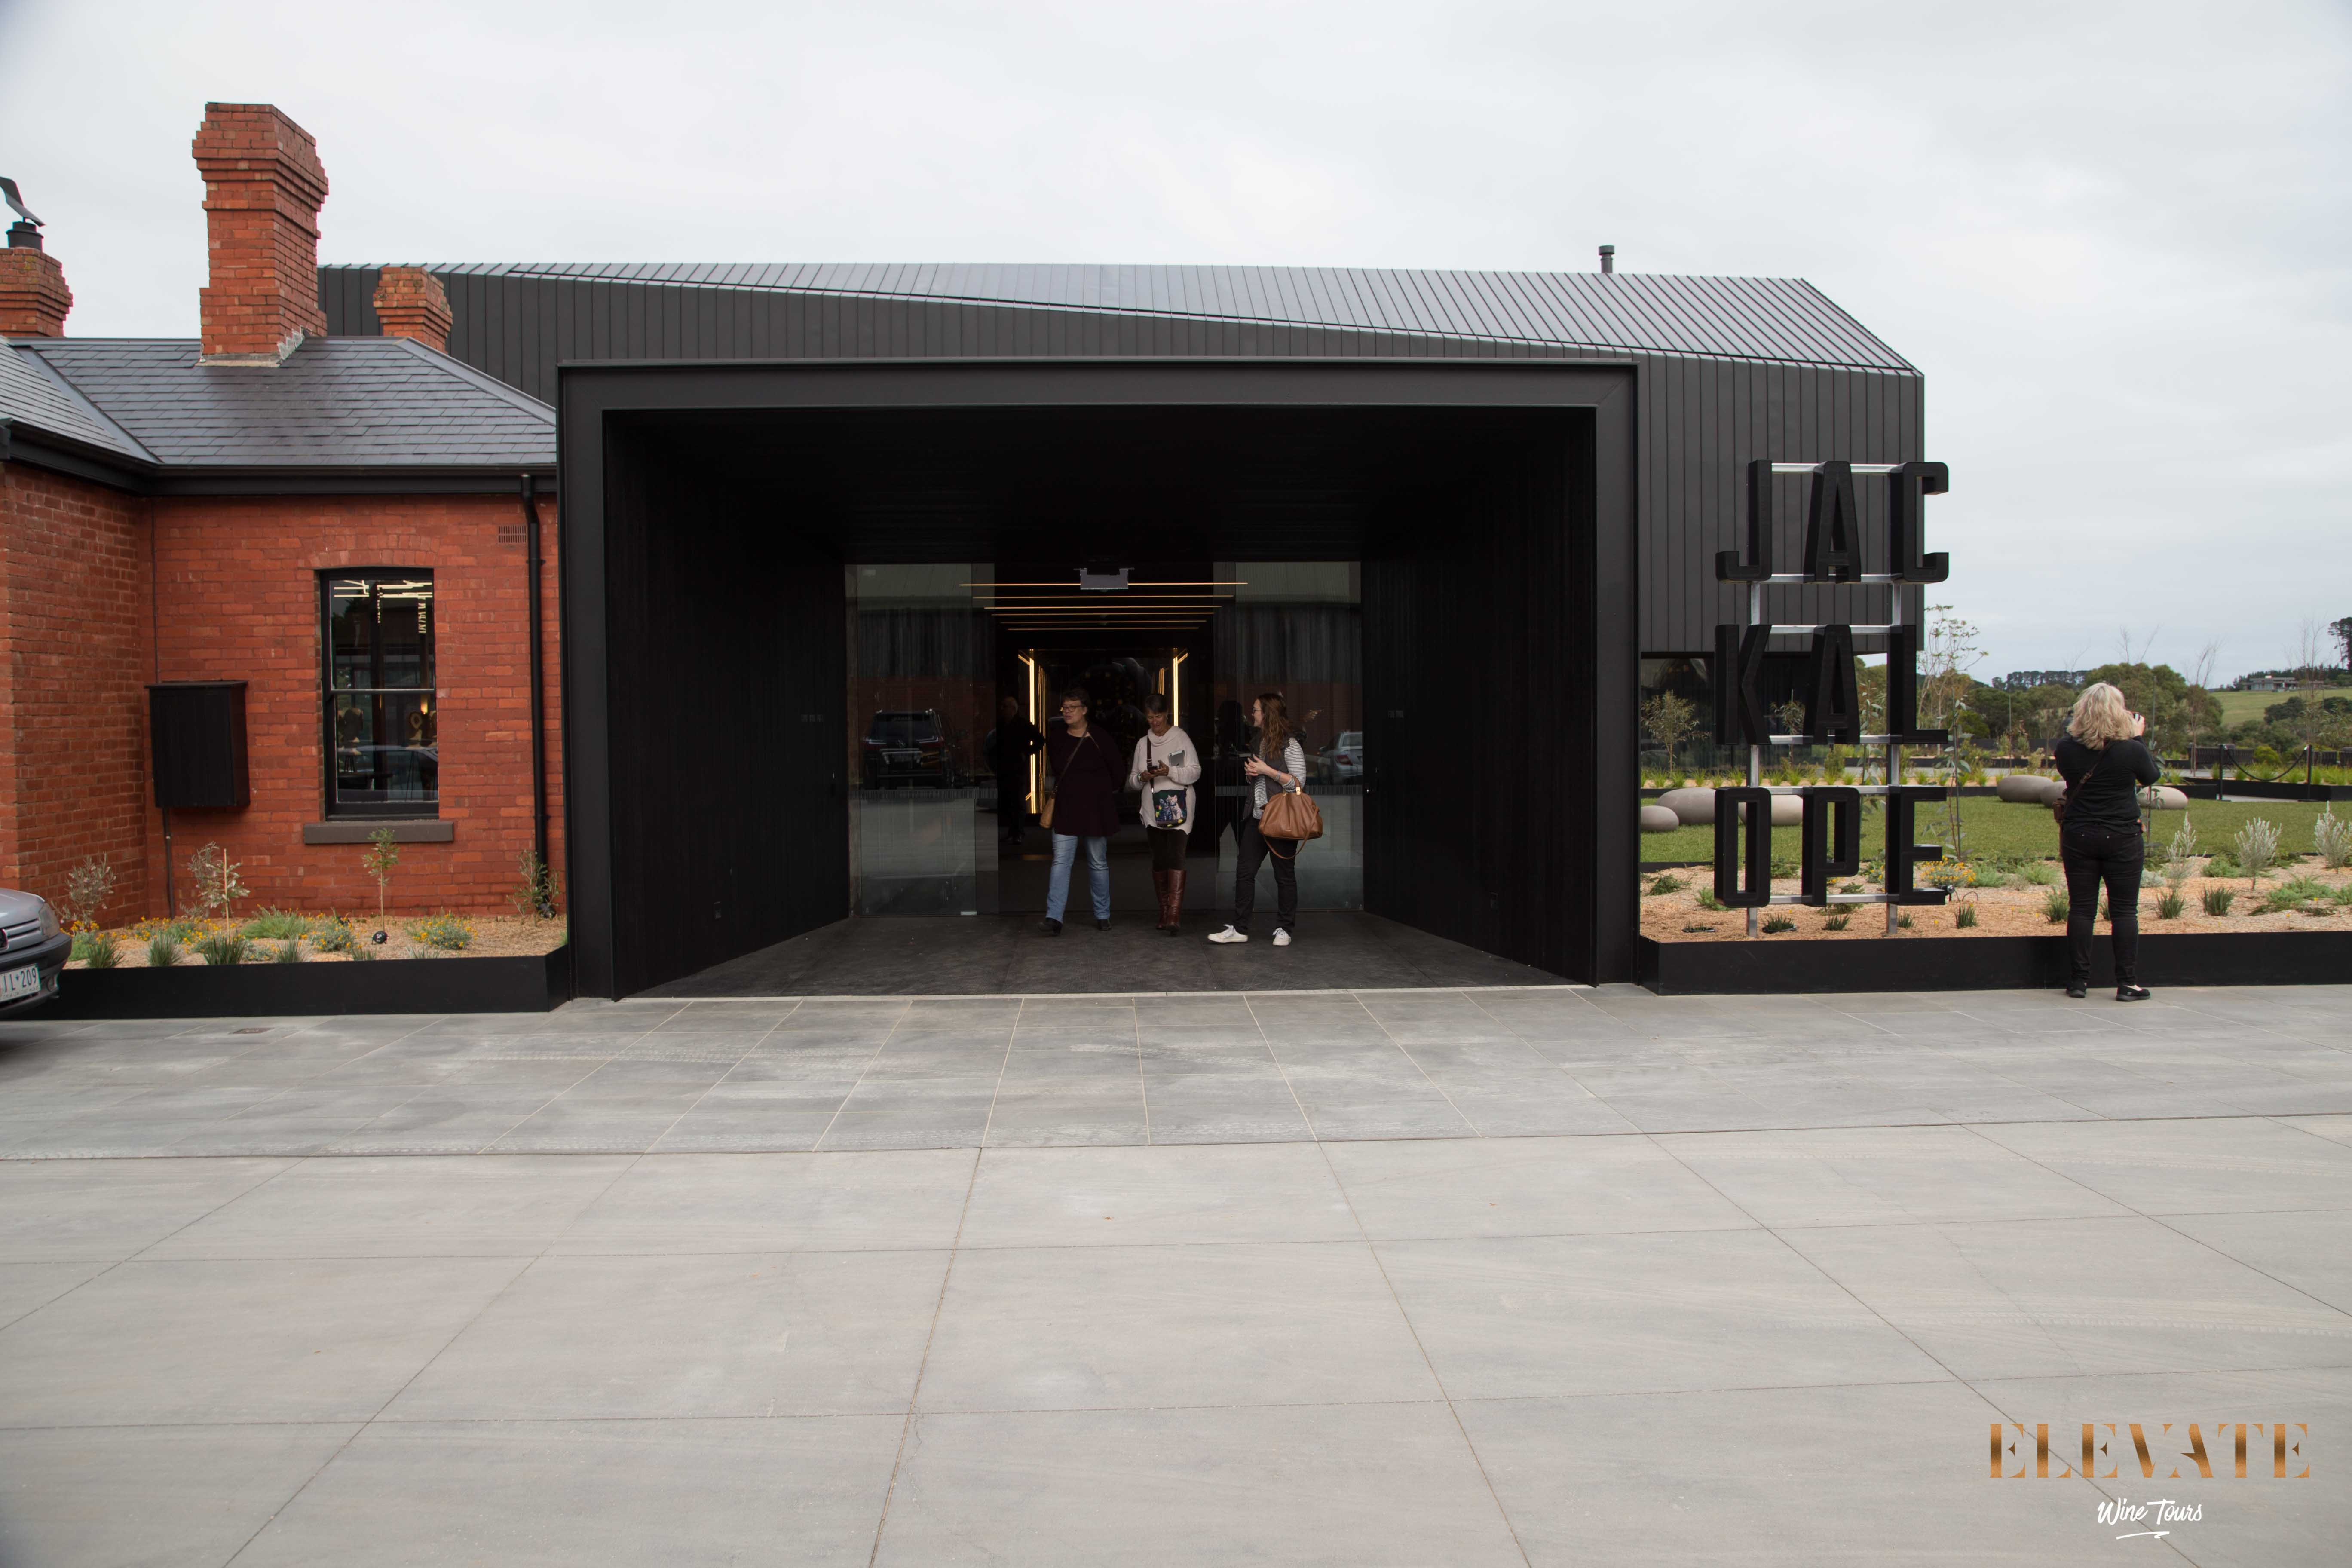 MORNINGTON-PENINSULA-WINERY-TOUR-ELEVATE-17